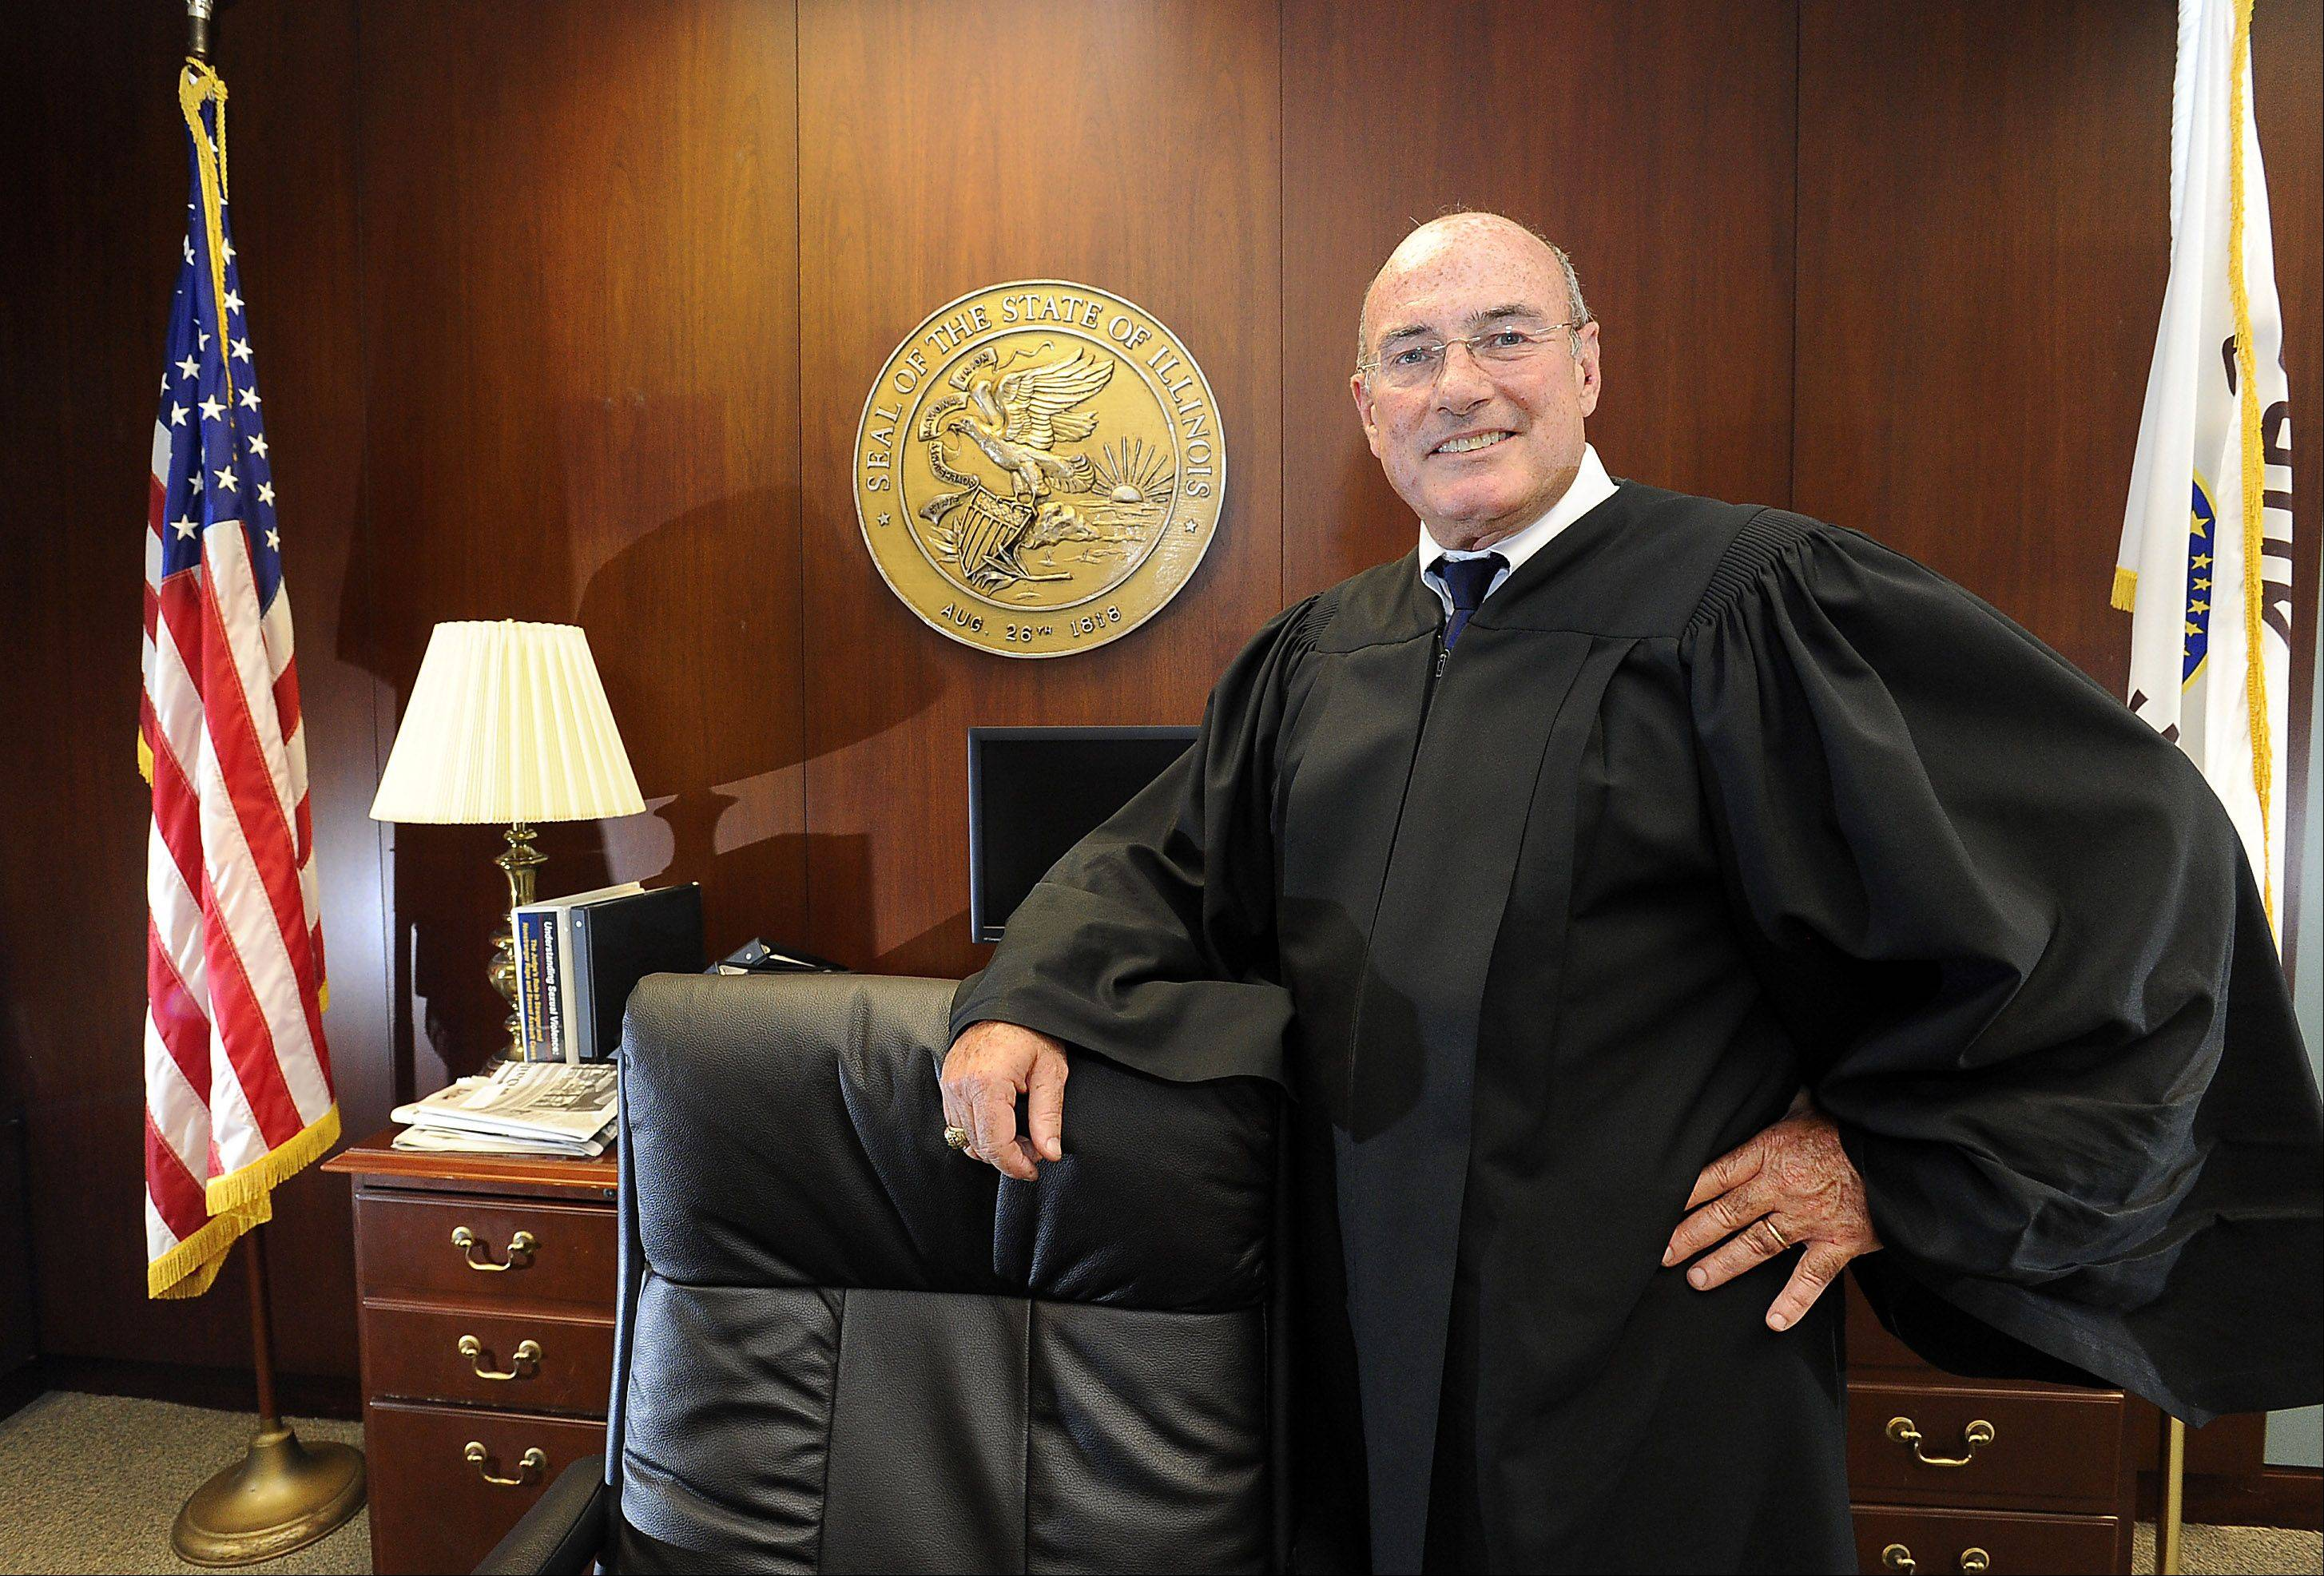 Cook County Associate Judge James P. Etchingham, an Arlington Heights resident who frequently rode his scooter to the Rolling Meadows courthouse, retired Monday after nearly 18 years of public service.